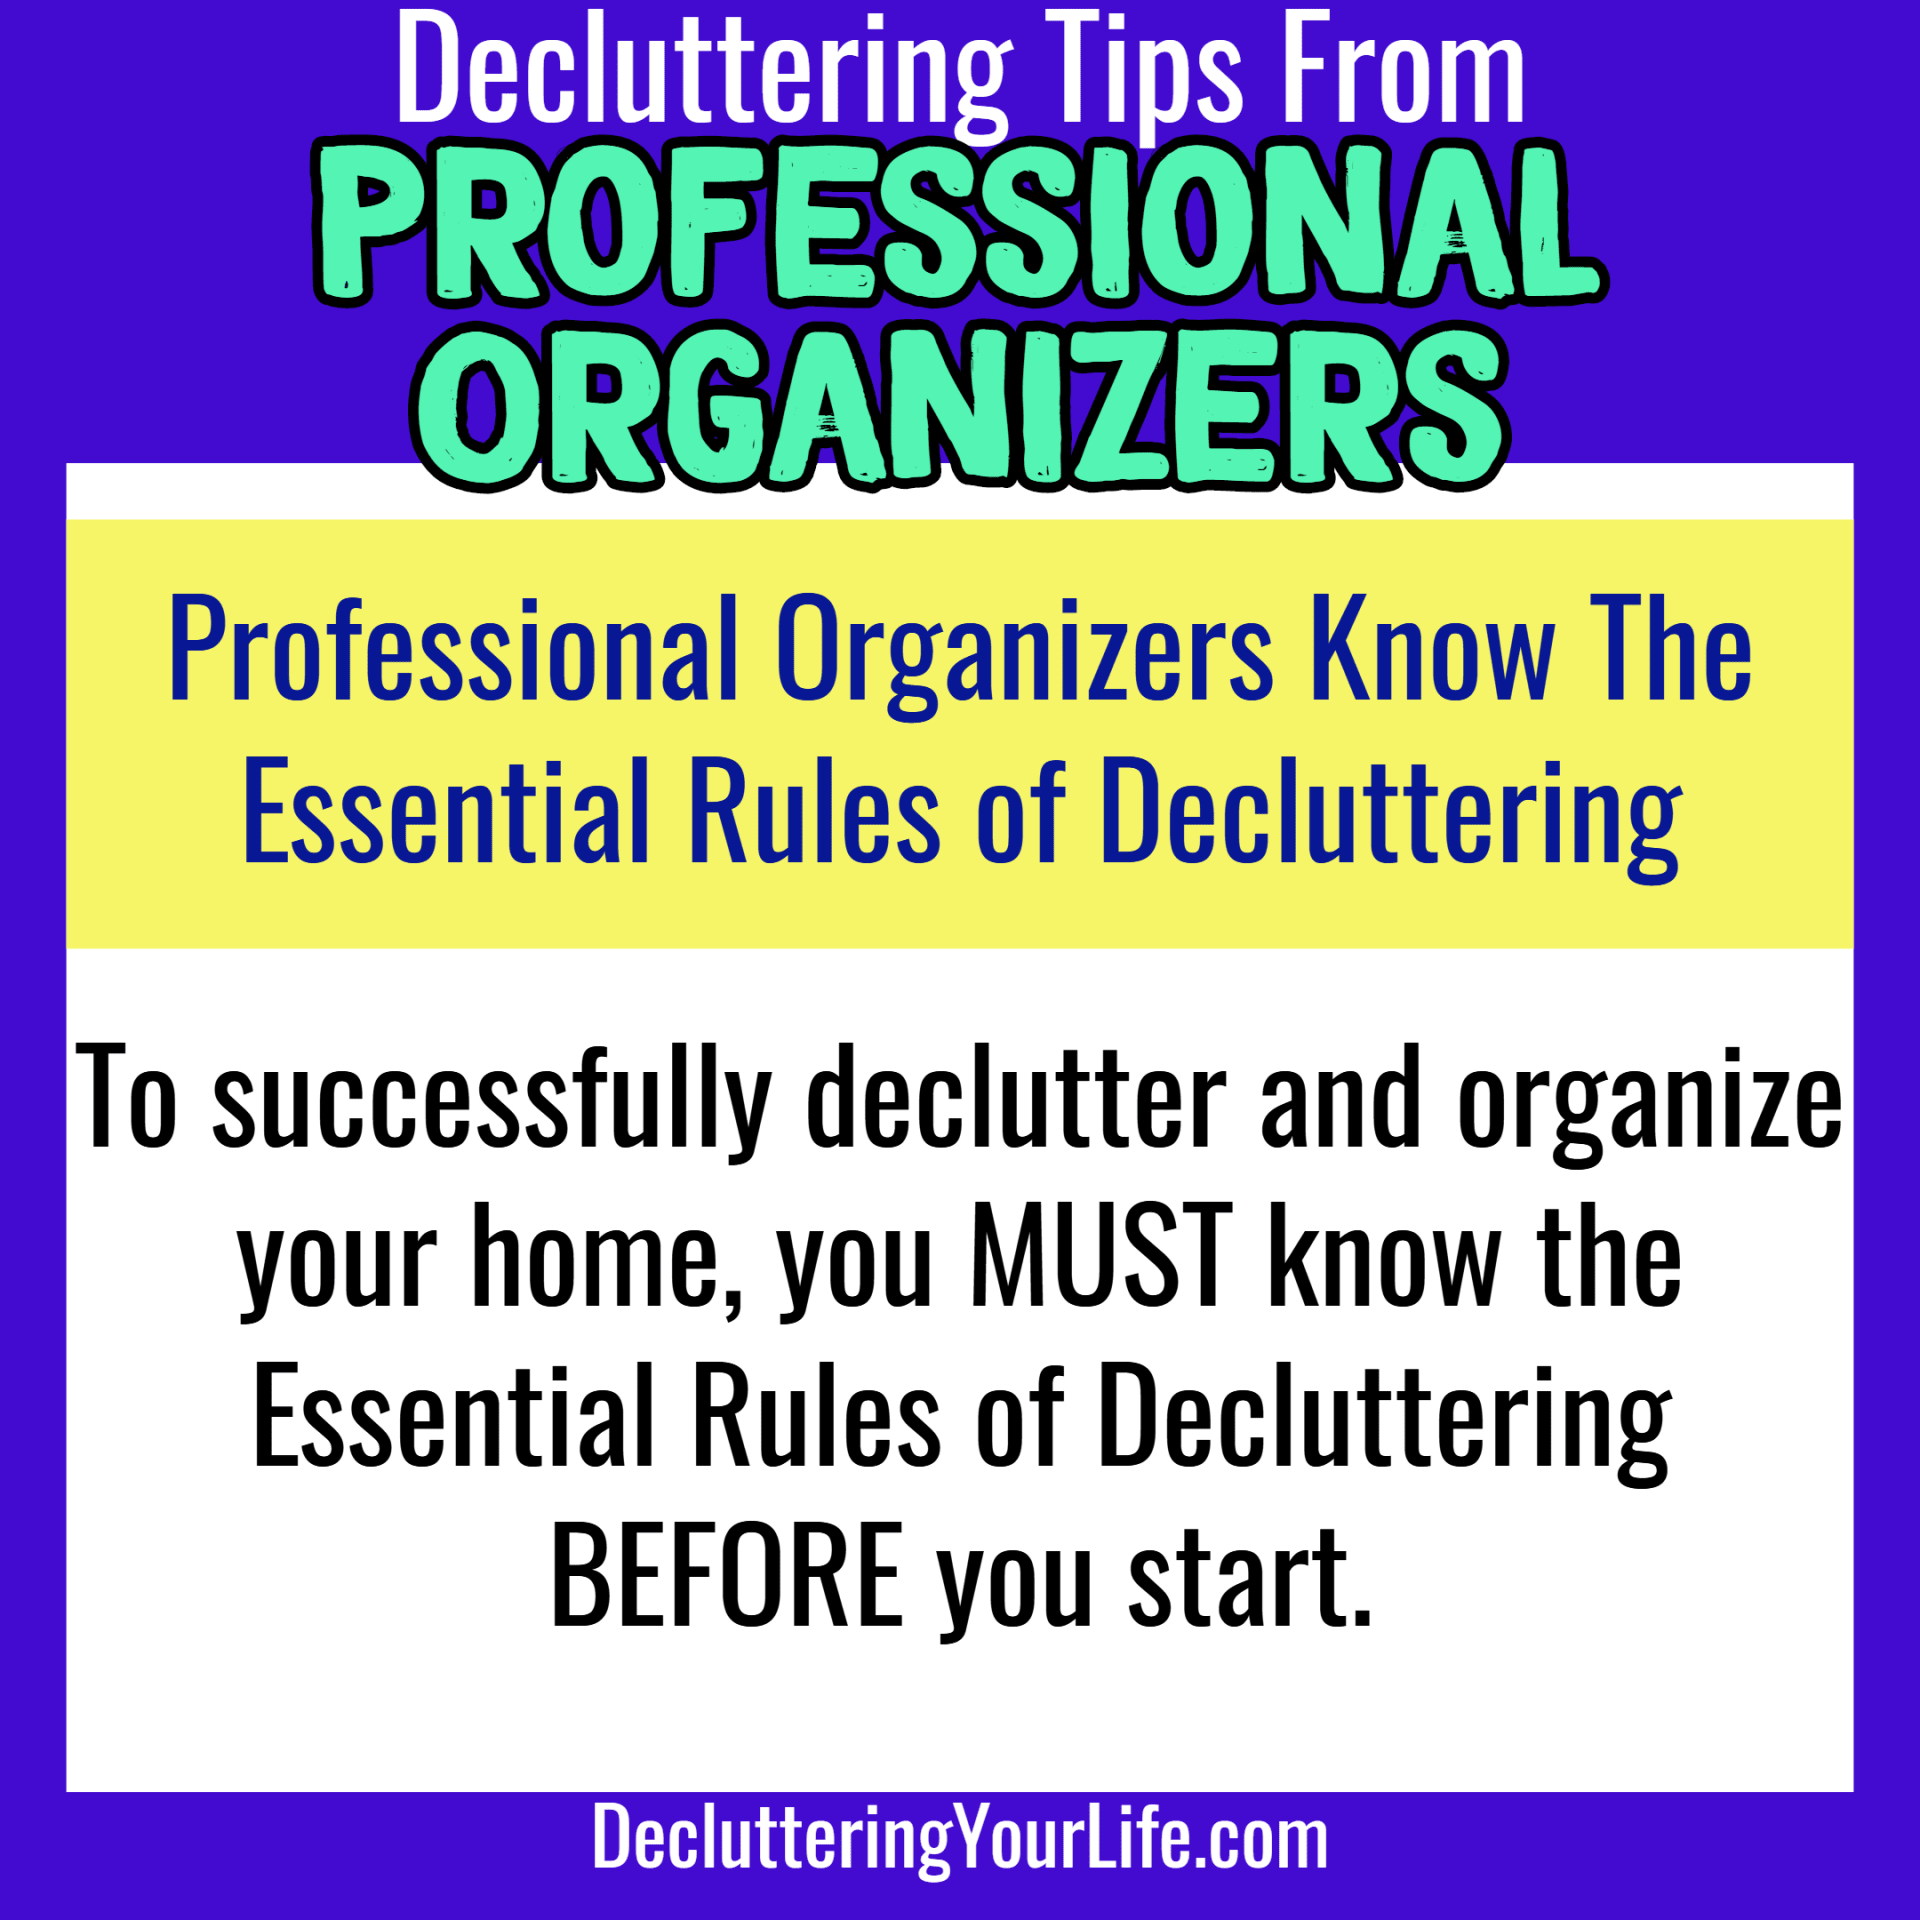 Tips from Professional Organizers for Uncluttering Your Home.  Go from cluttered mess to organized success with these tips from Professional Organizers